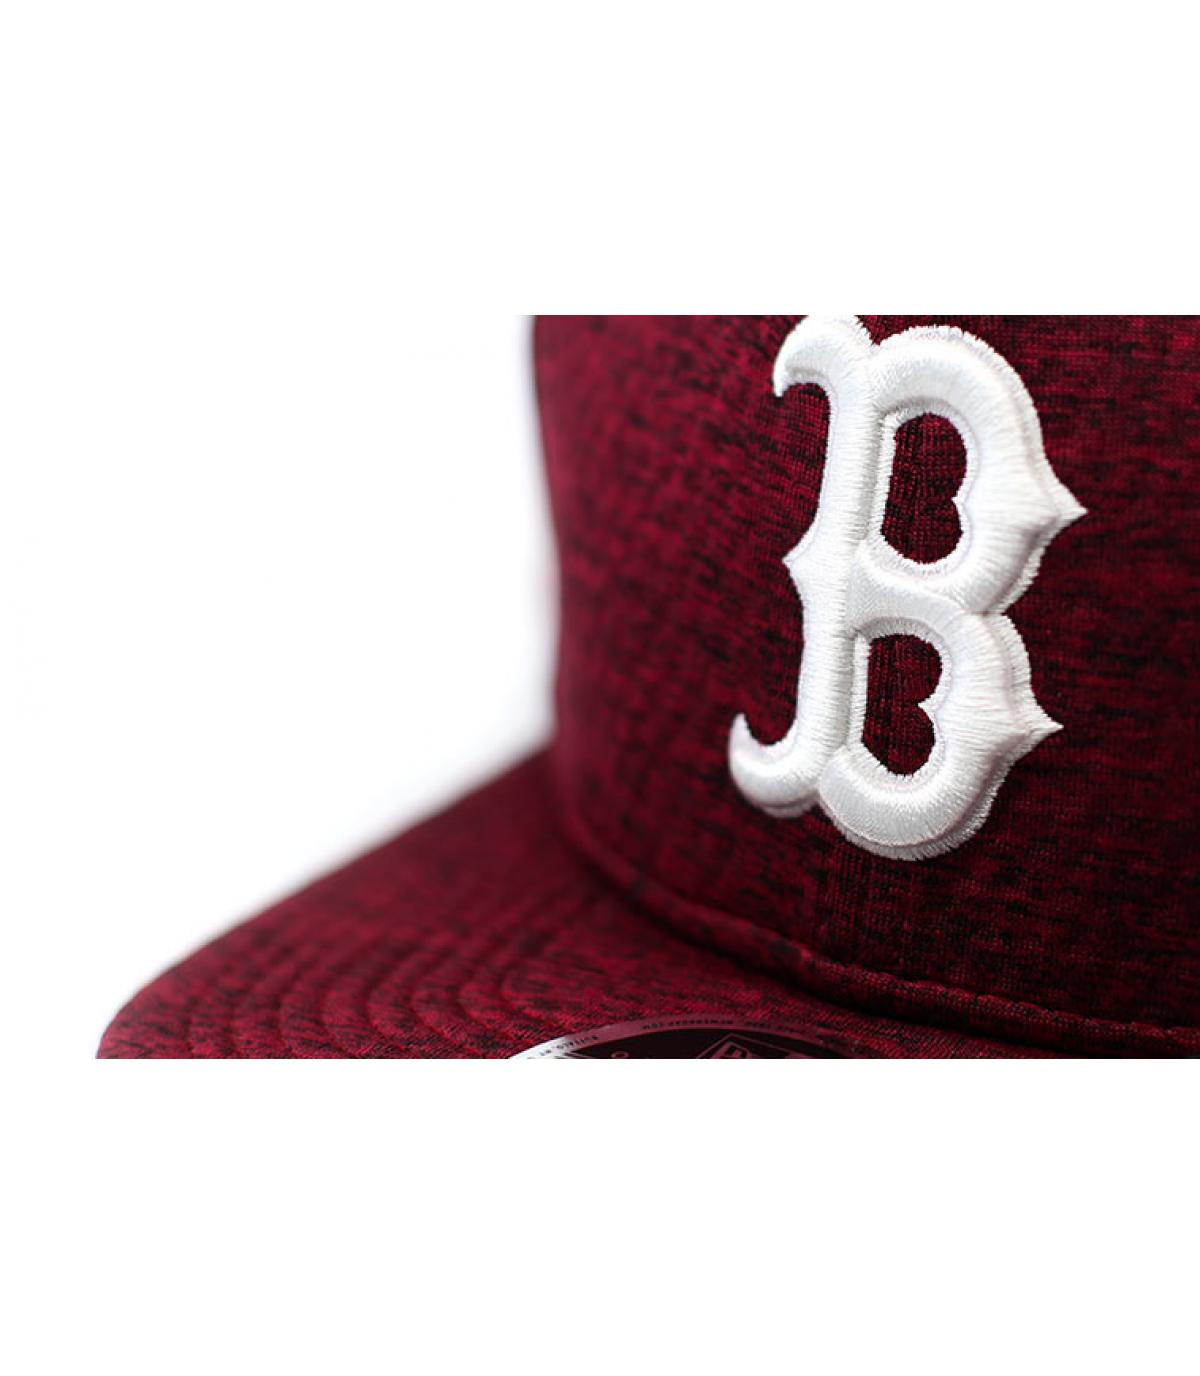 Details Dry Switch Boston 9Fifty cardinal - afbeeling 3